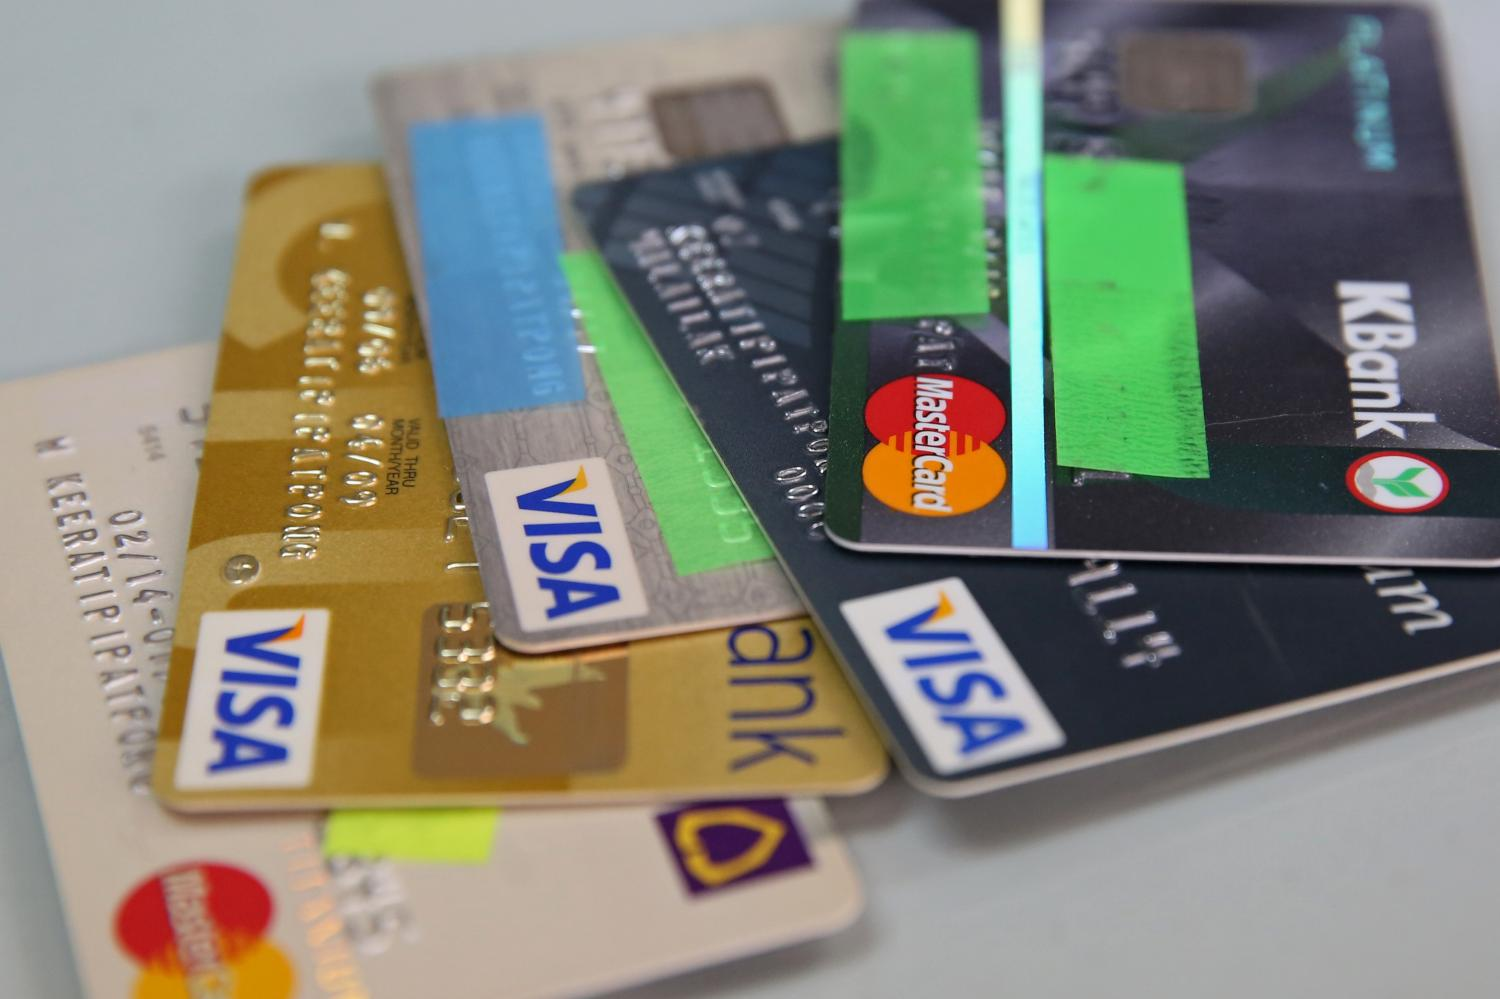 Credit card spending is forecast to pick up in November and December, in line with the government's private consumption stimulus.